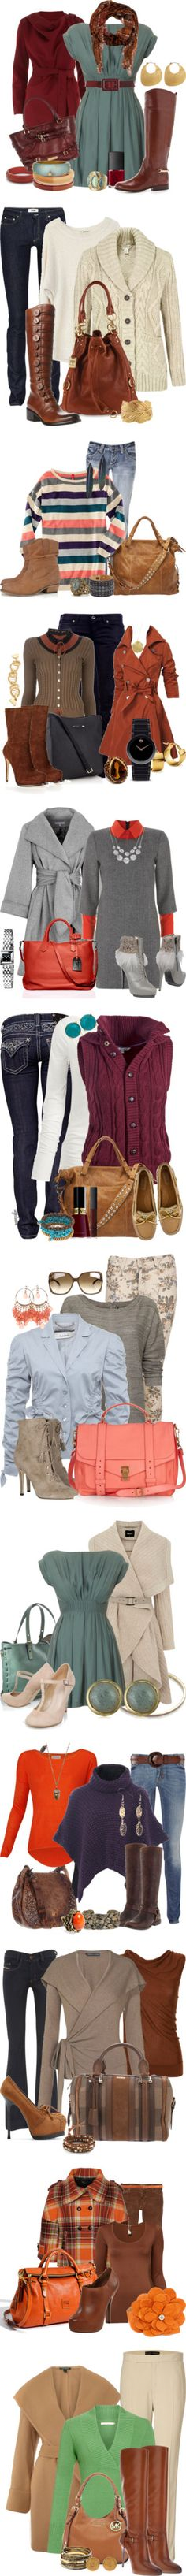 Fall outfits. Some are actually affordable.